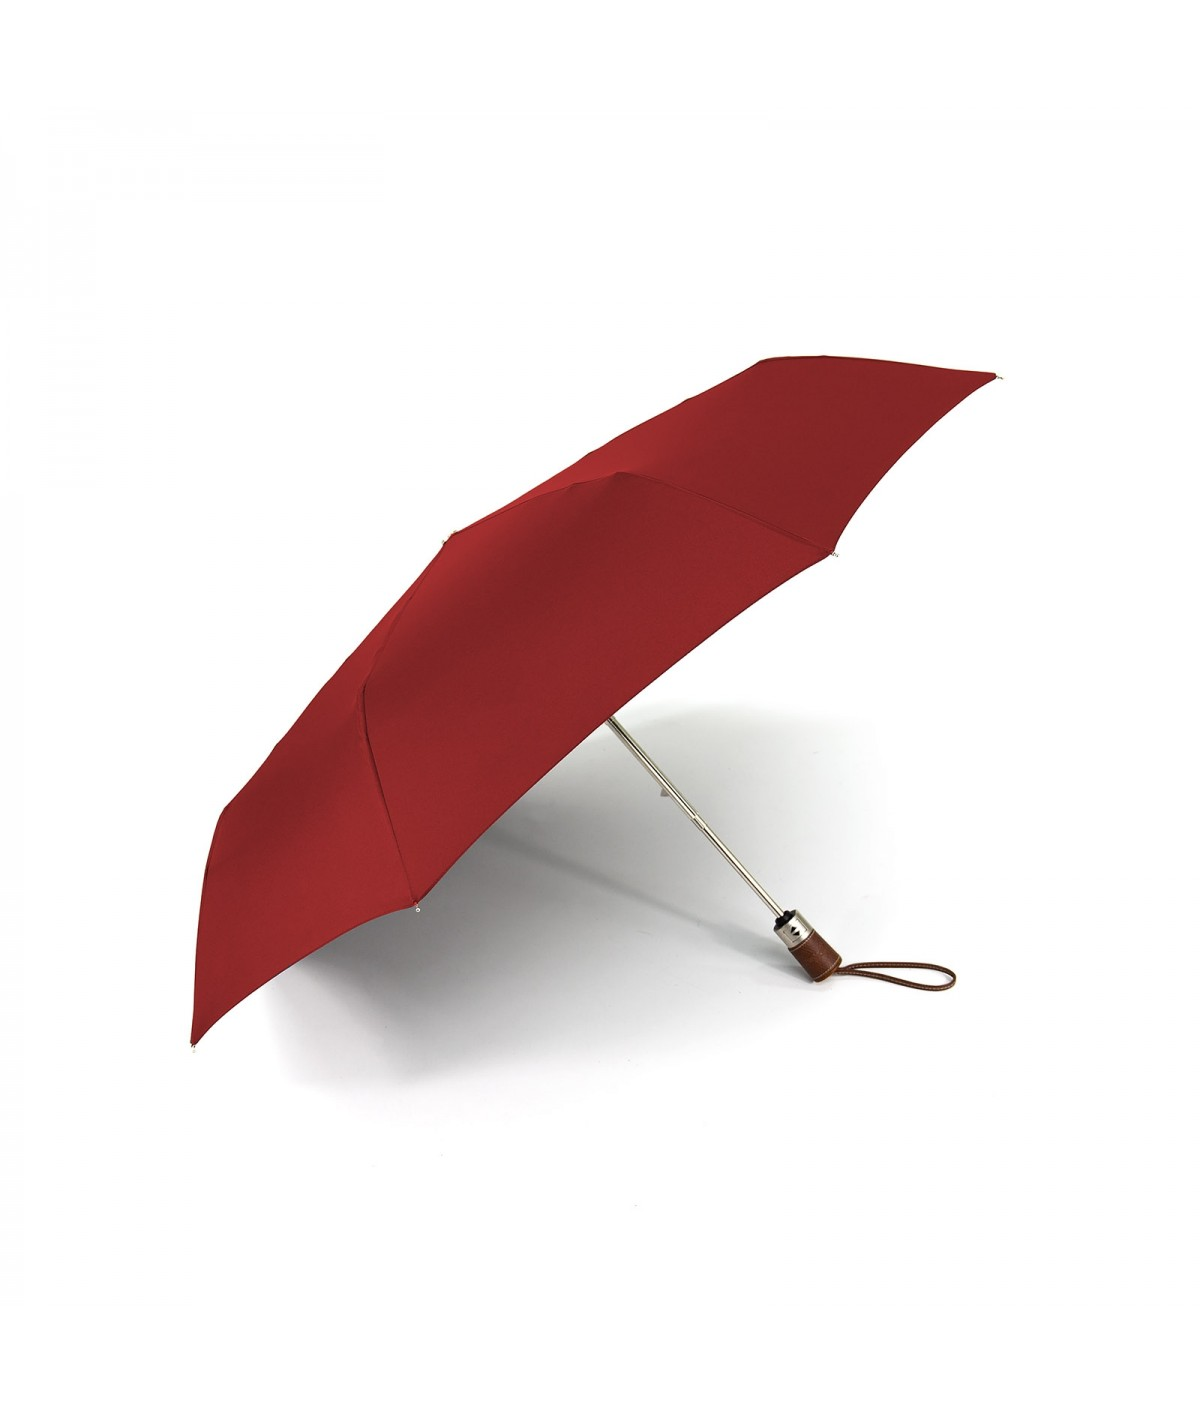 "→ Longchamp Umbrella ""Folding"" - Red - Automatic opening/closing - Handcrafted in France by Maison Pierre Vaux"